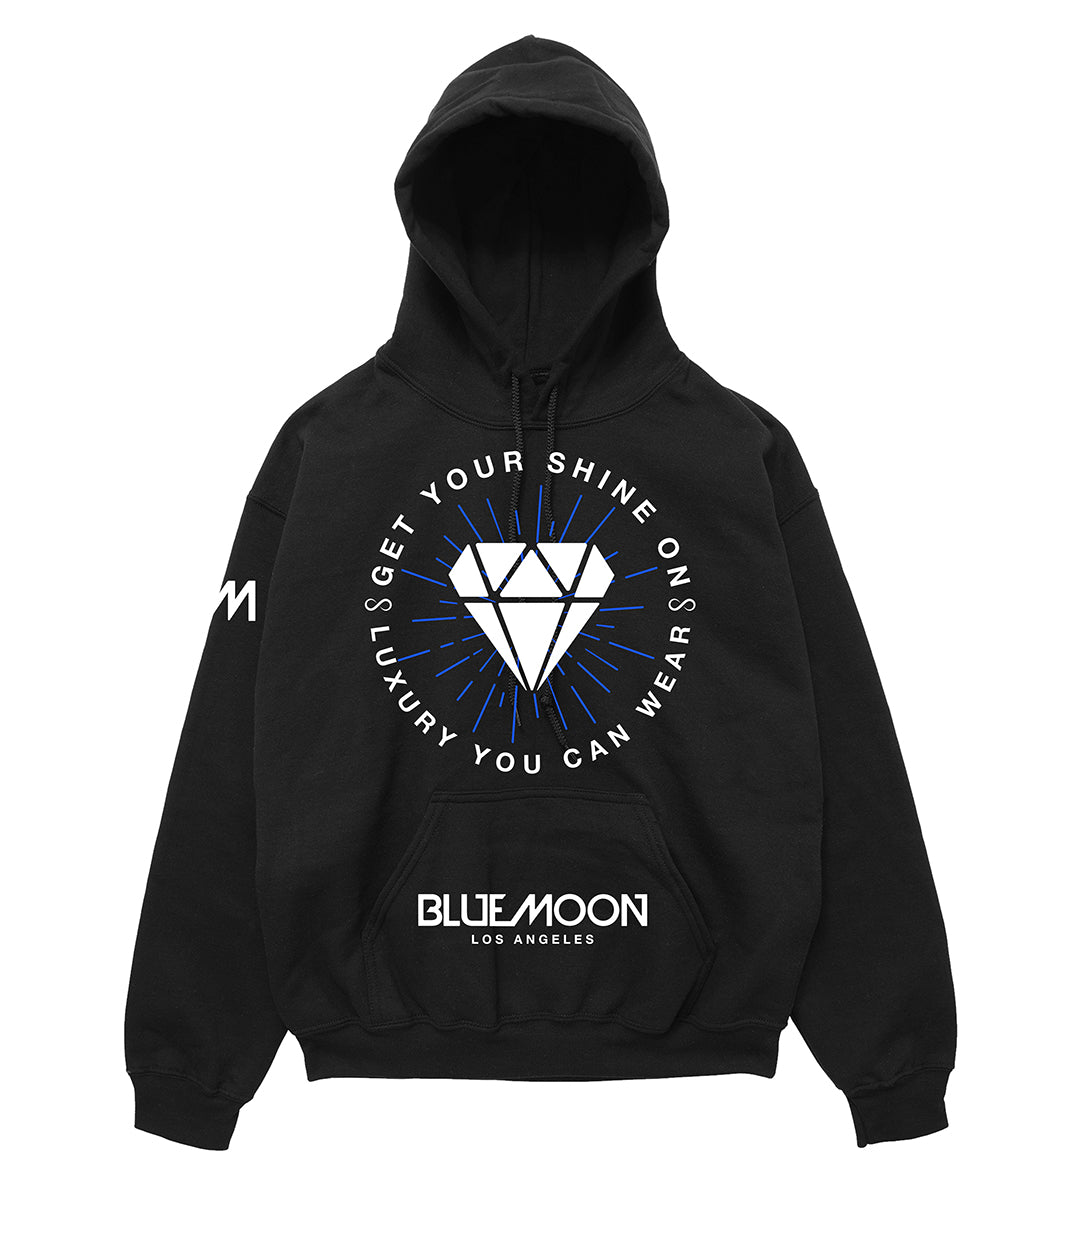 Black Hoodie with white diamond logo by Blue Moon & Co, Exclusive, Lifestyle